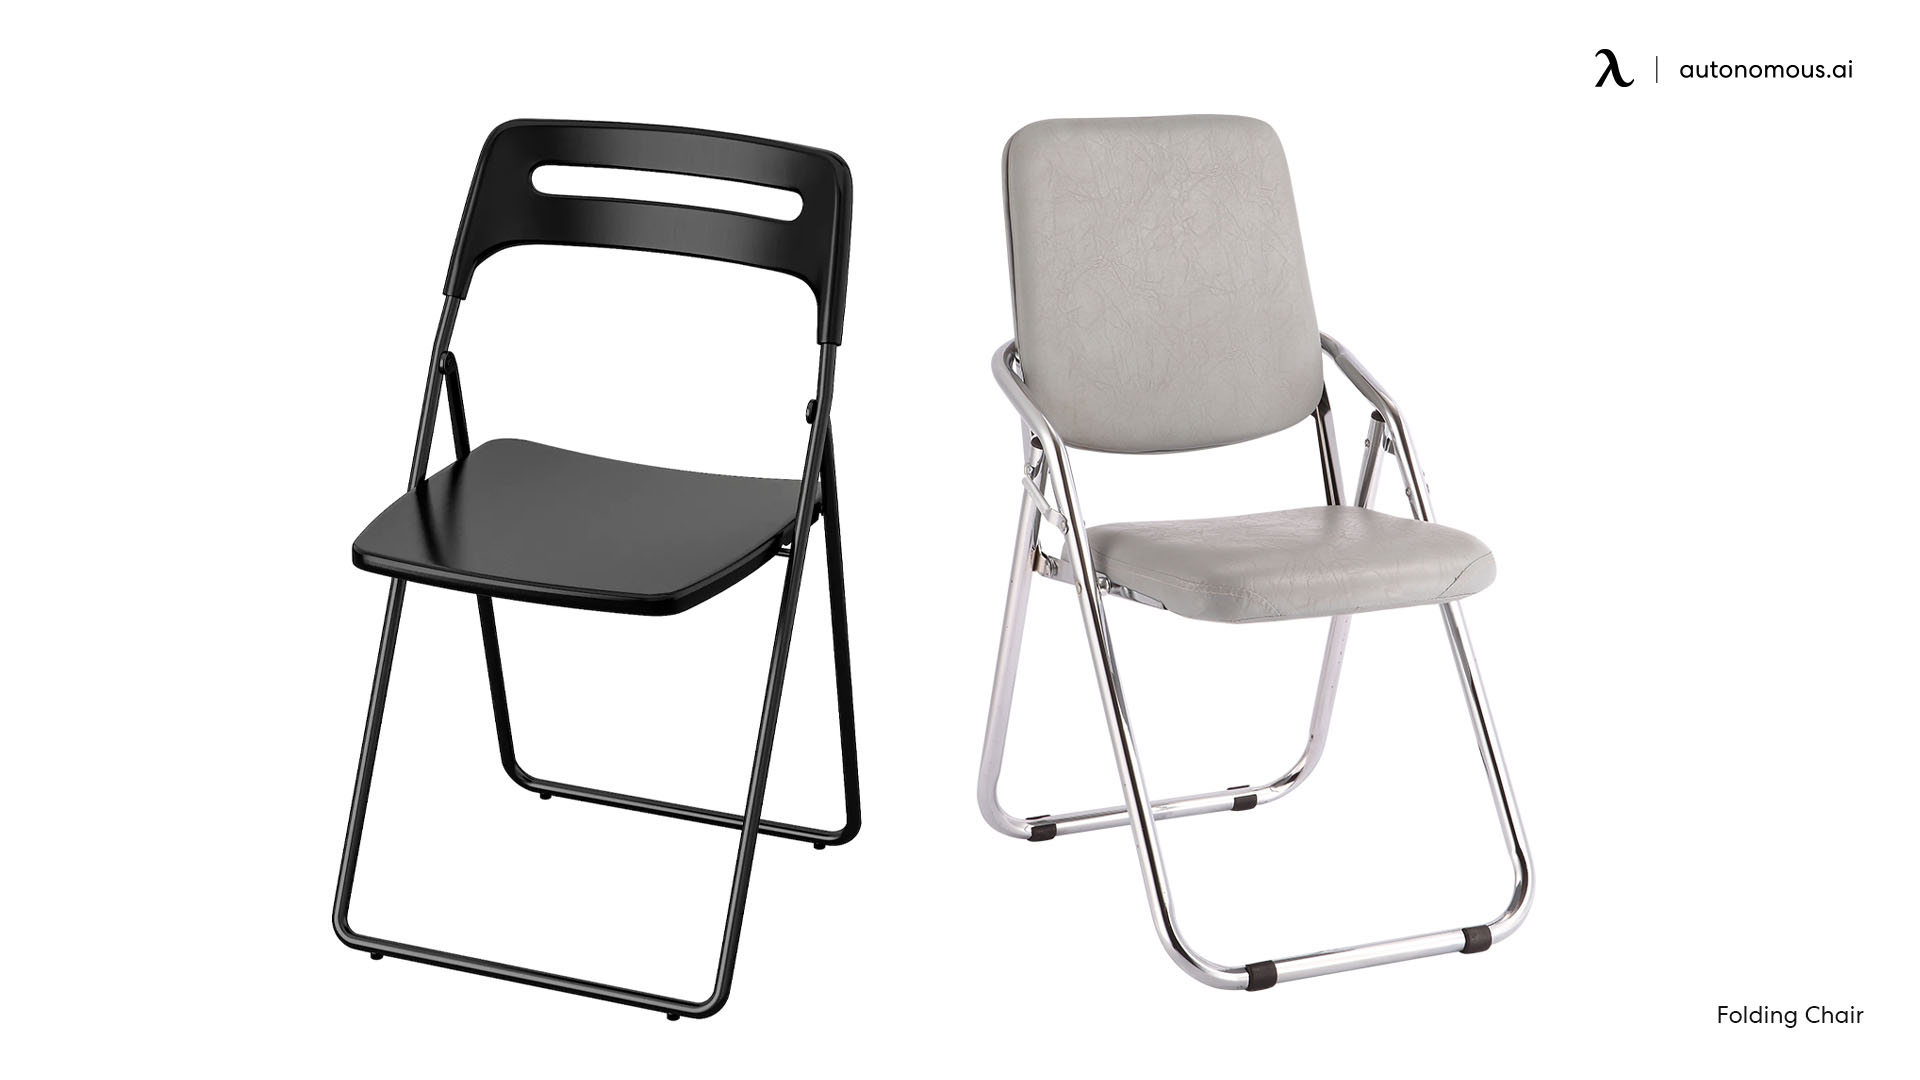 Photo of Folding chair